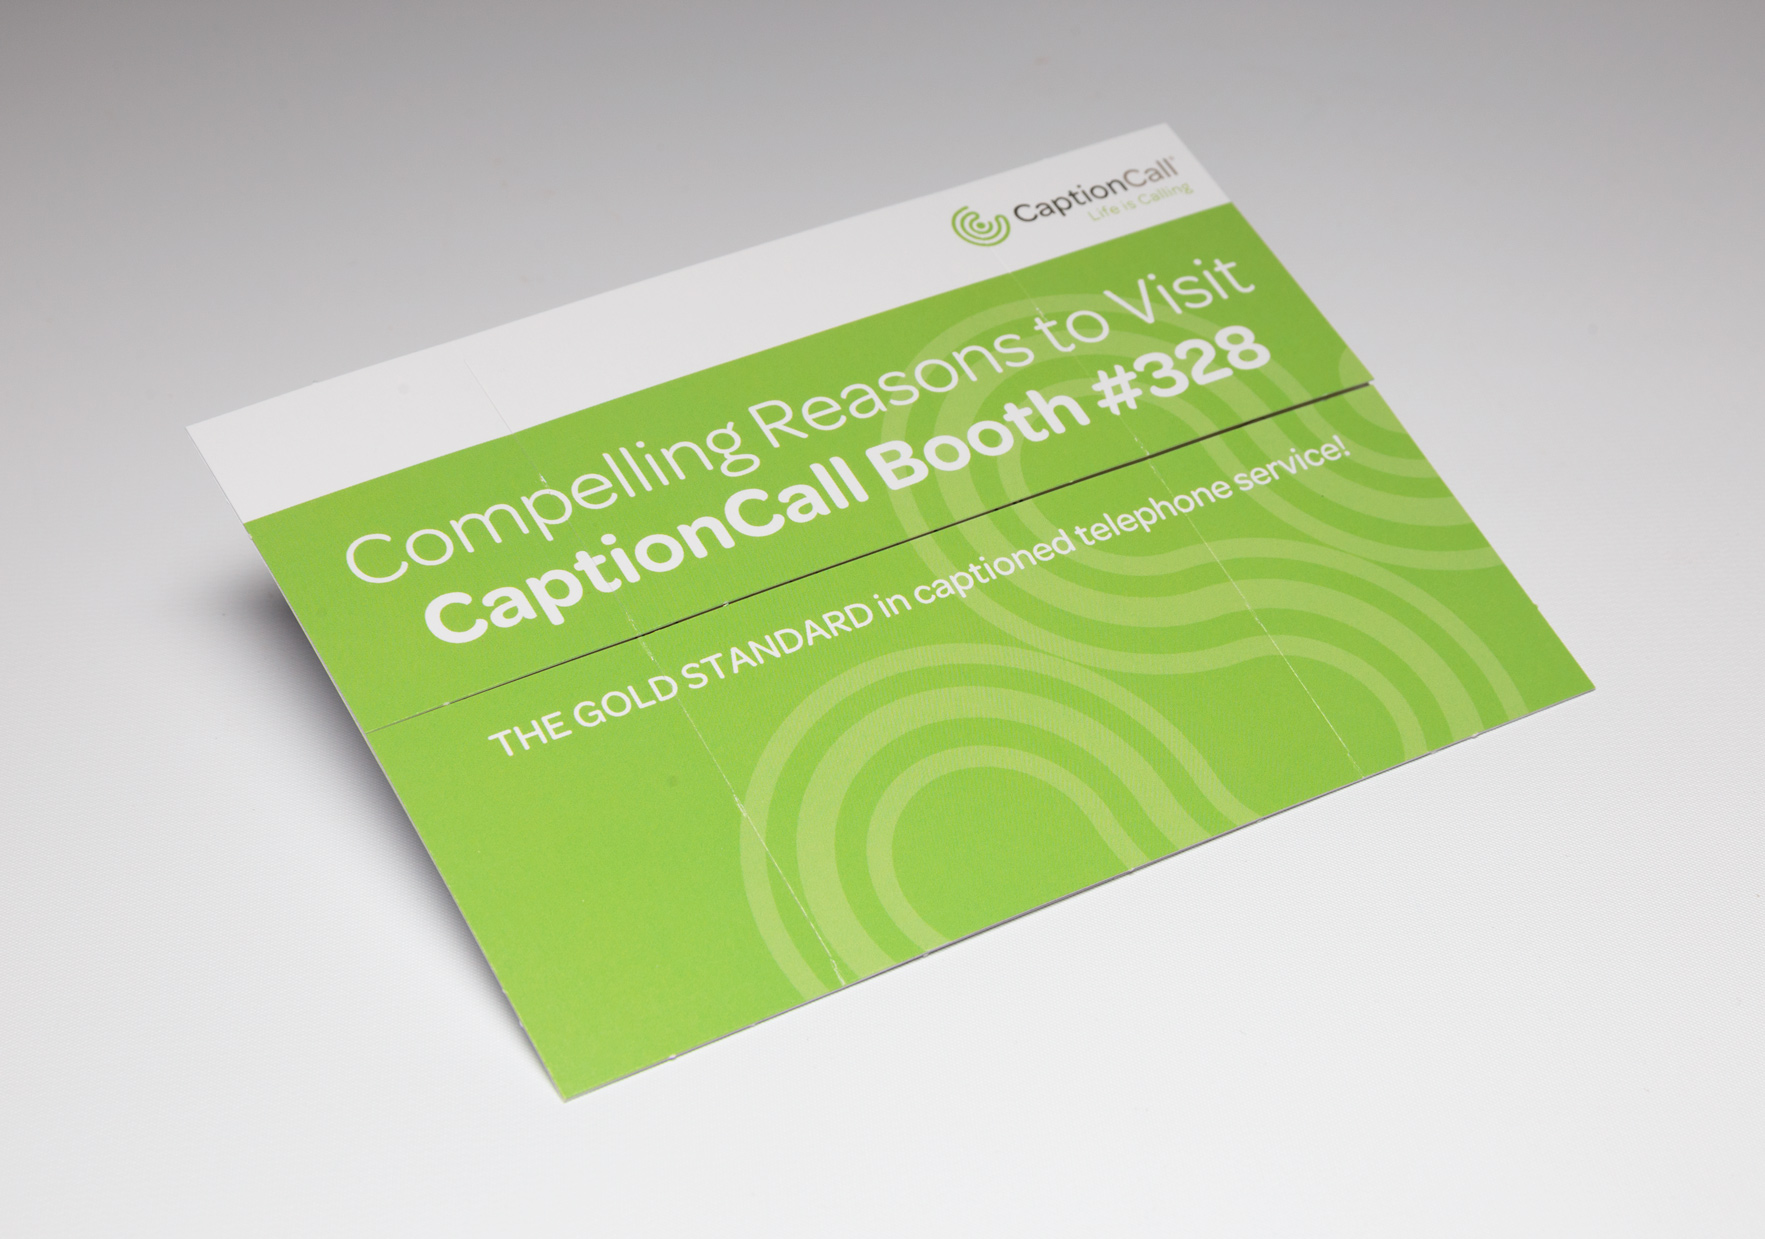 Caption Call Trade Show Handout Grabs Attention Using the Medium Flapper